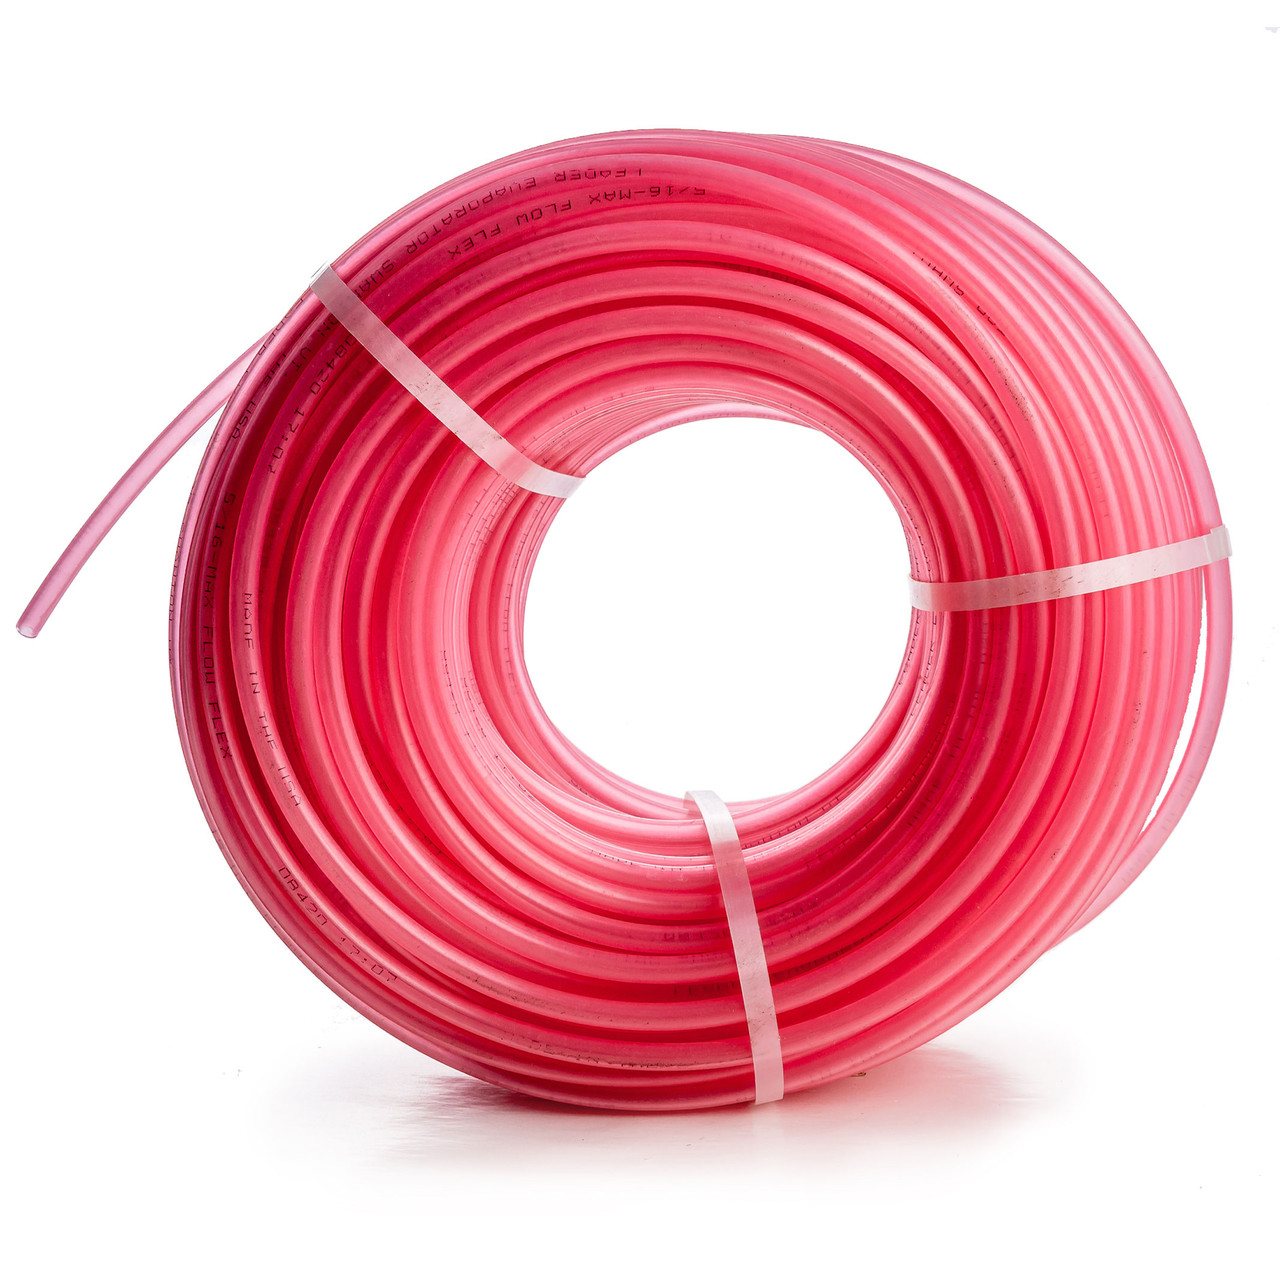 "Leader 5/16"" Pink Max Flow Flex Tubing"